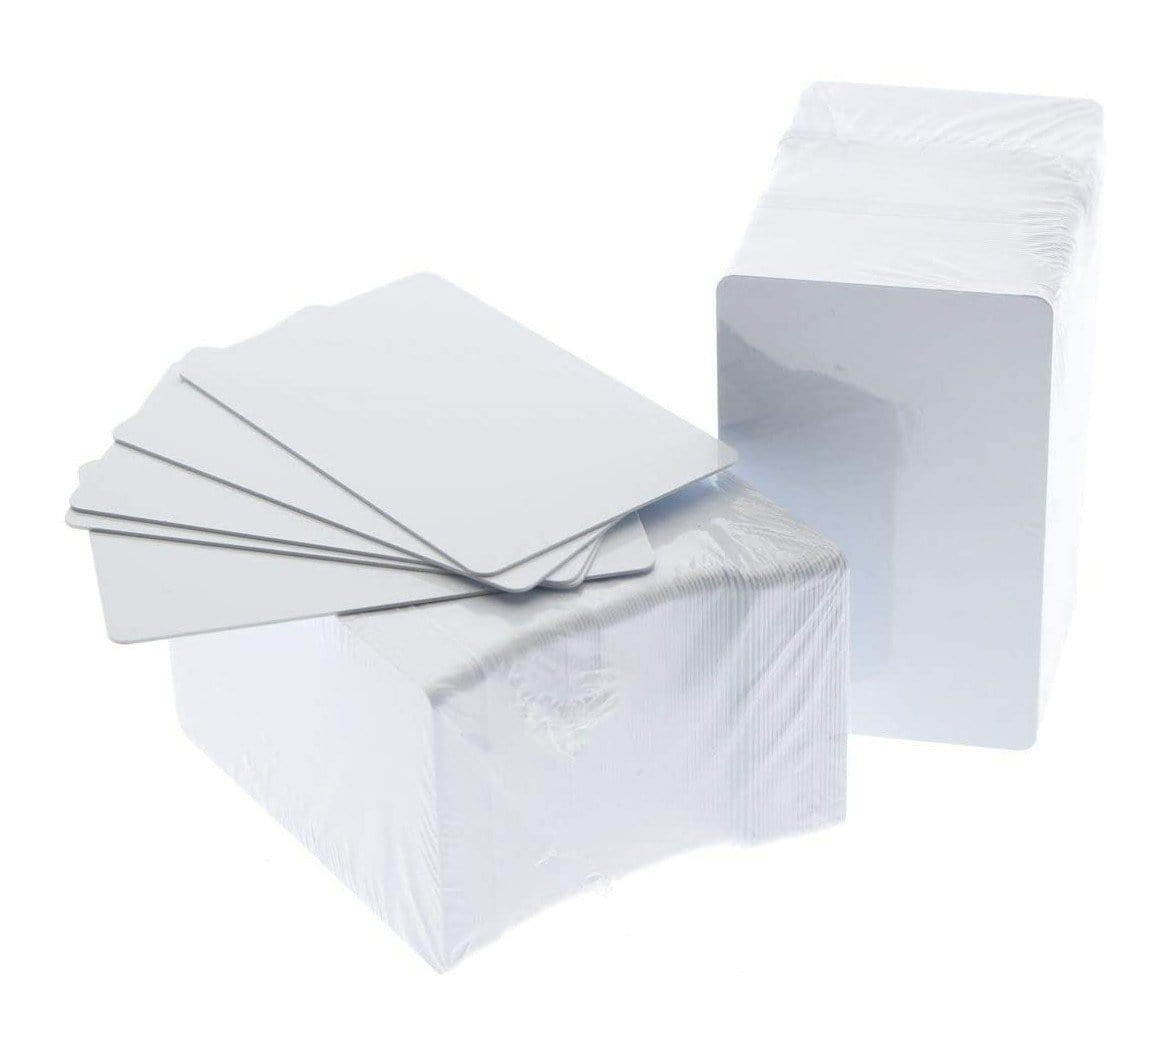 Standard Blank Cards